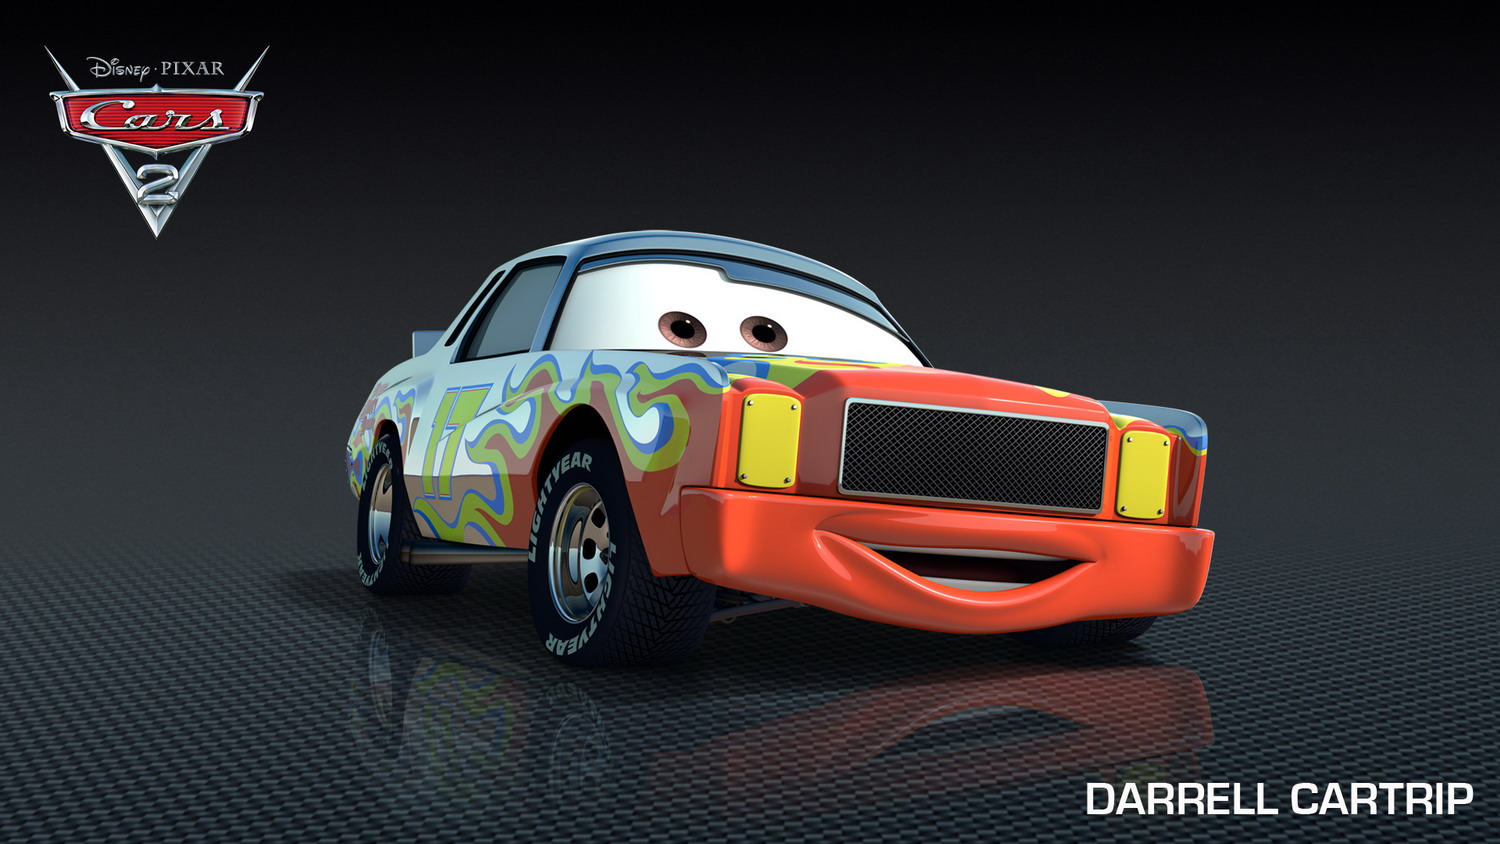 Jeff Gordon & Darrell Waltrip Join the Cast of Cars 2